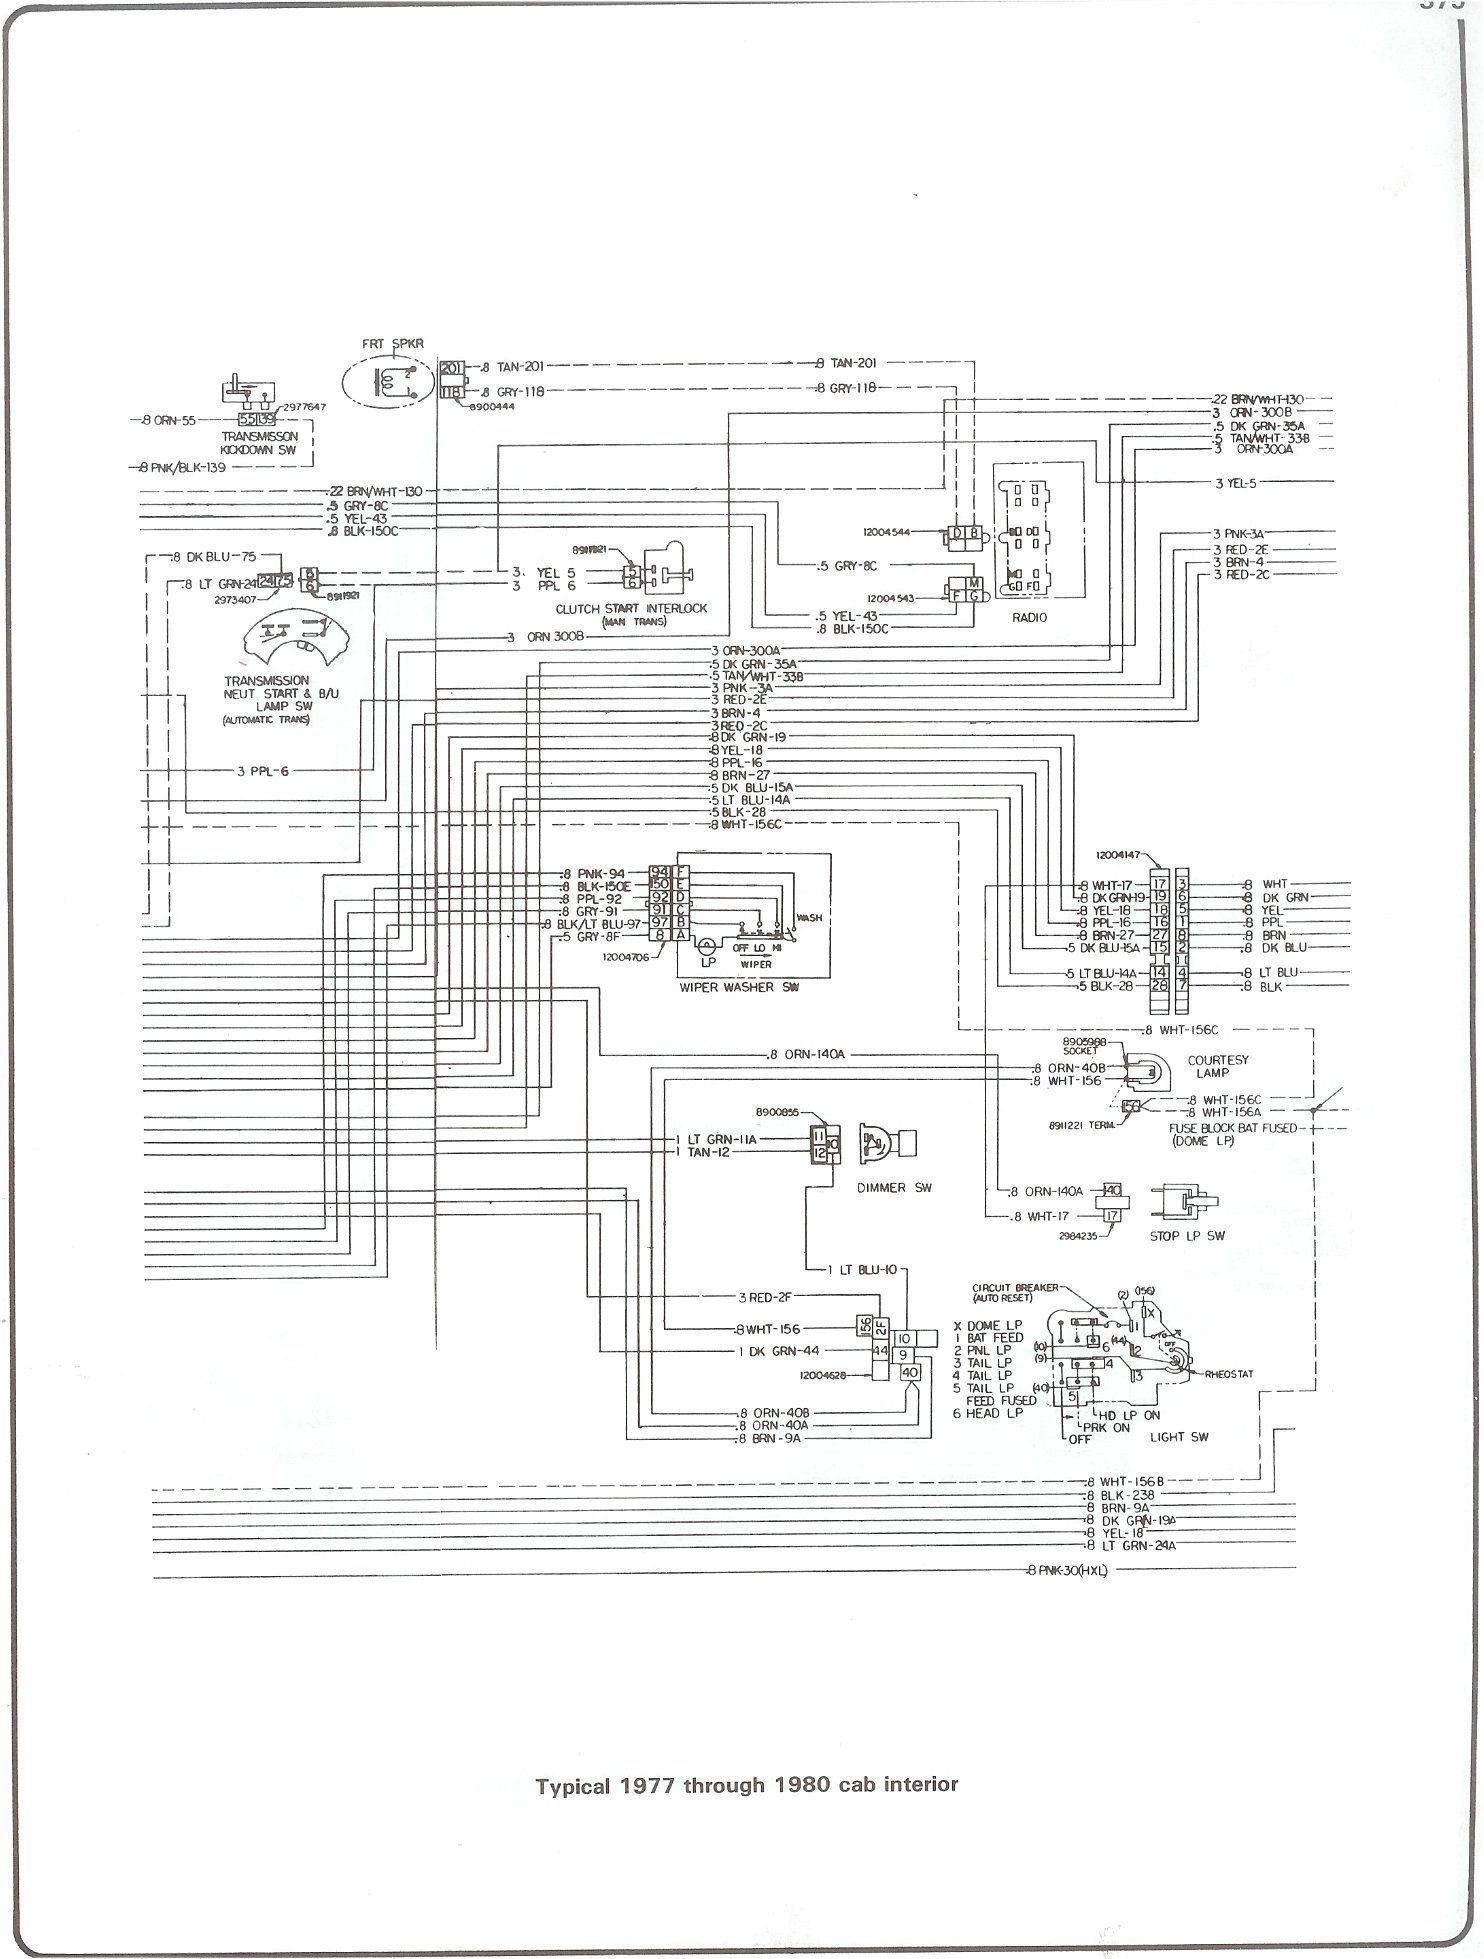 77 80_cab_inter complete 73 87 wiring diagrams GM Ignition Switch Wiring Diagram at reclaimingppi.co